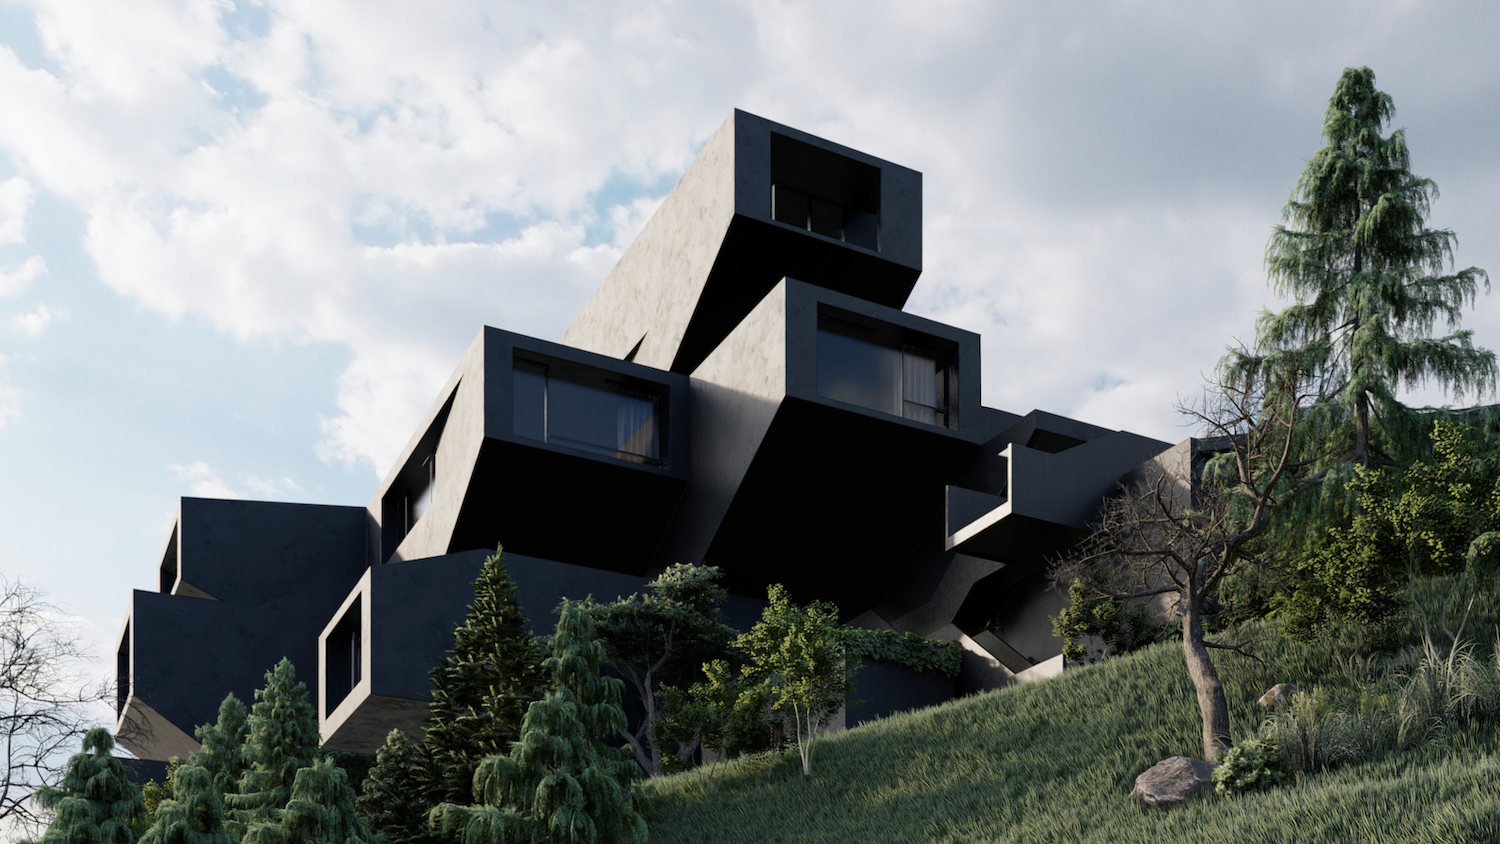 rendering image of a black building on a green hill